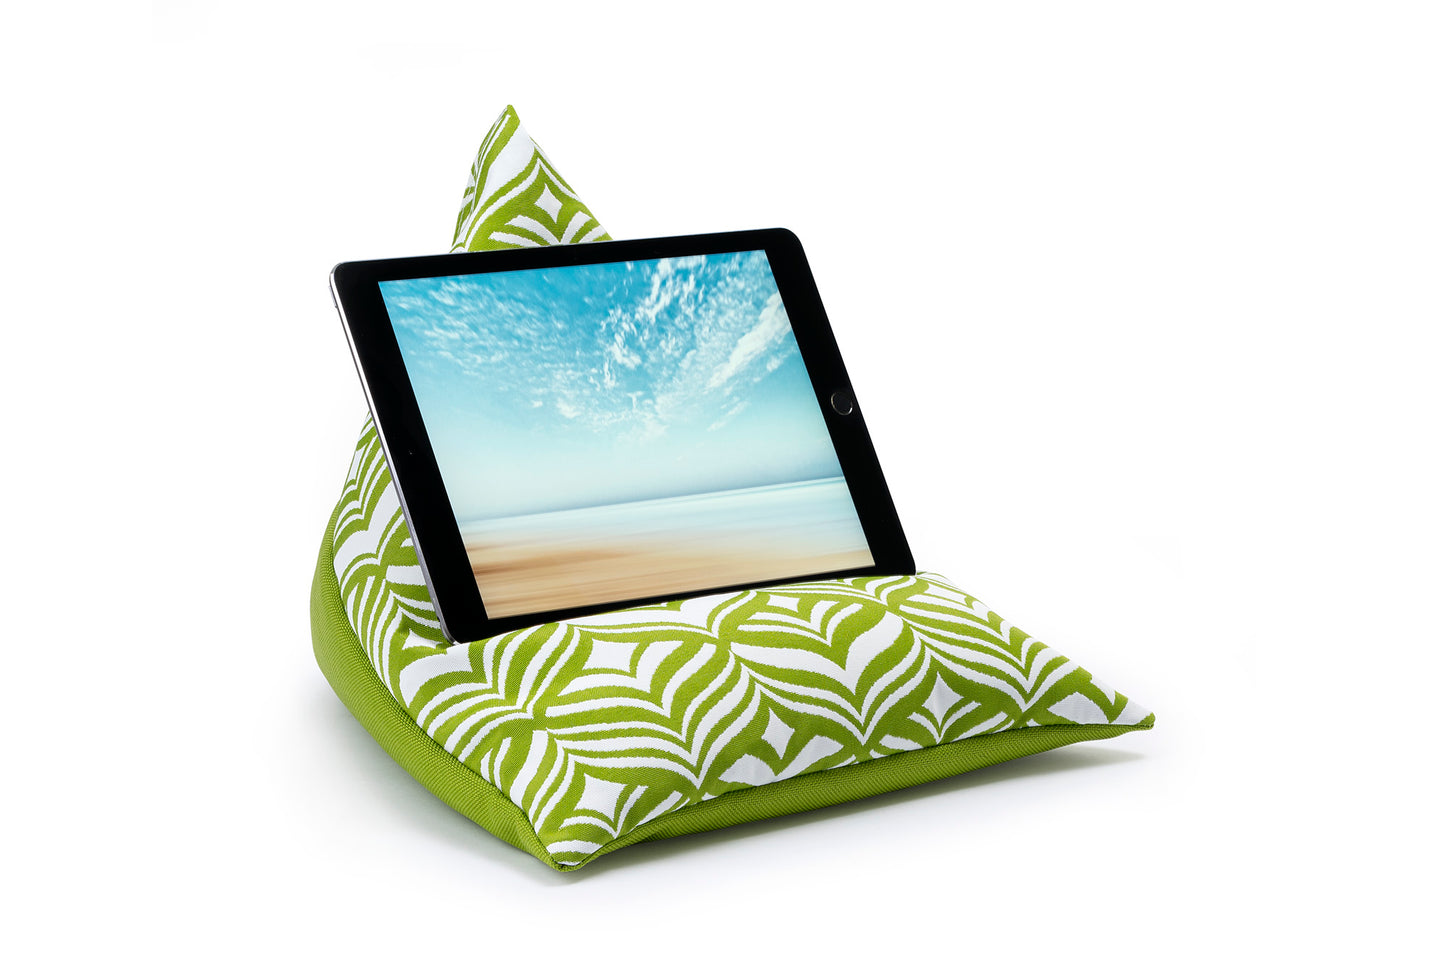 iPad, Tablet & eReader Bean Bag Stand in Tulip Green/Green Base armadillosun